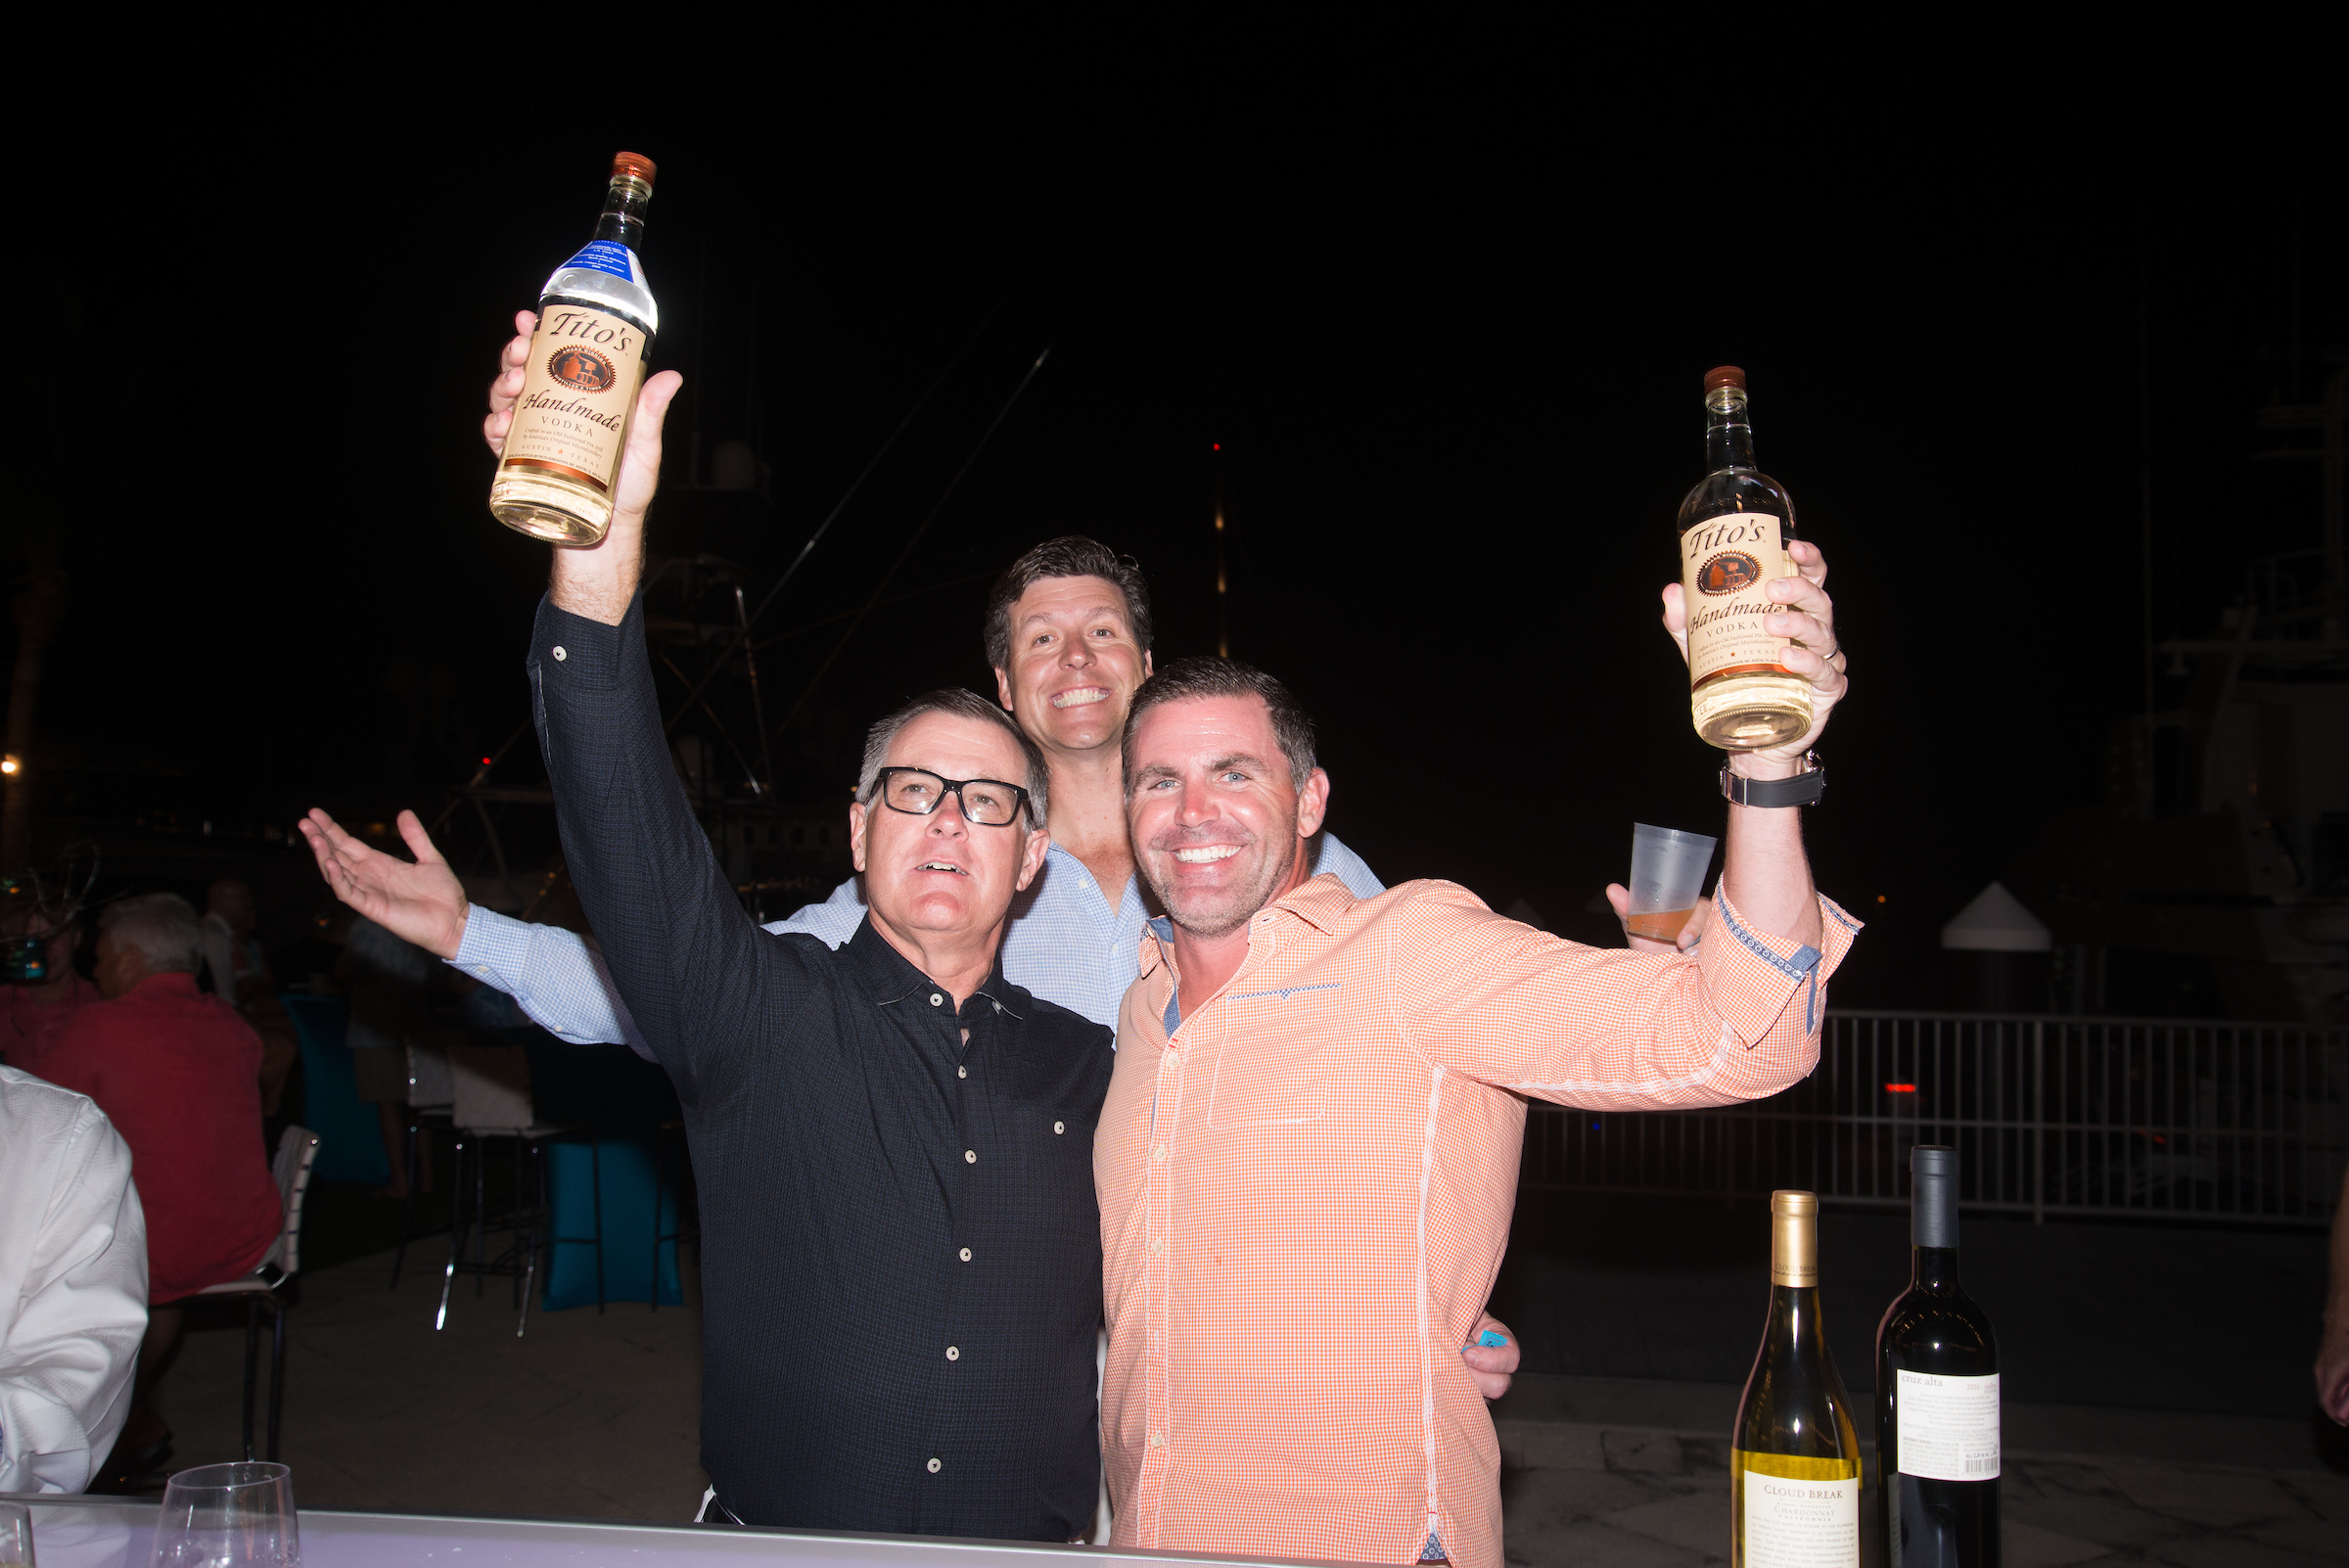 Clark-cheers to Titos.jpg